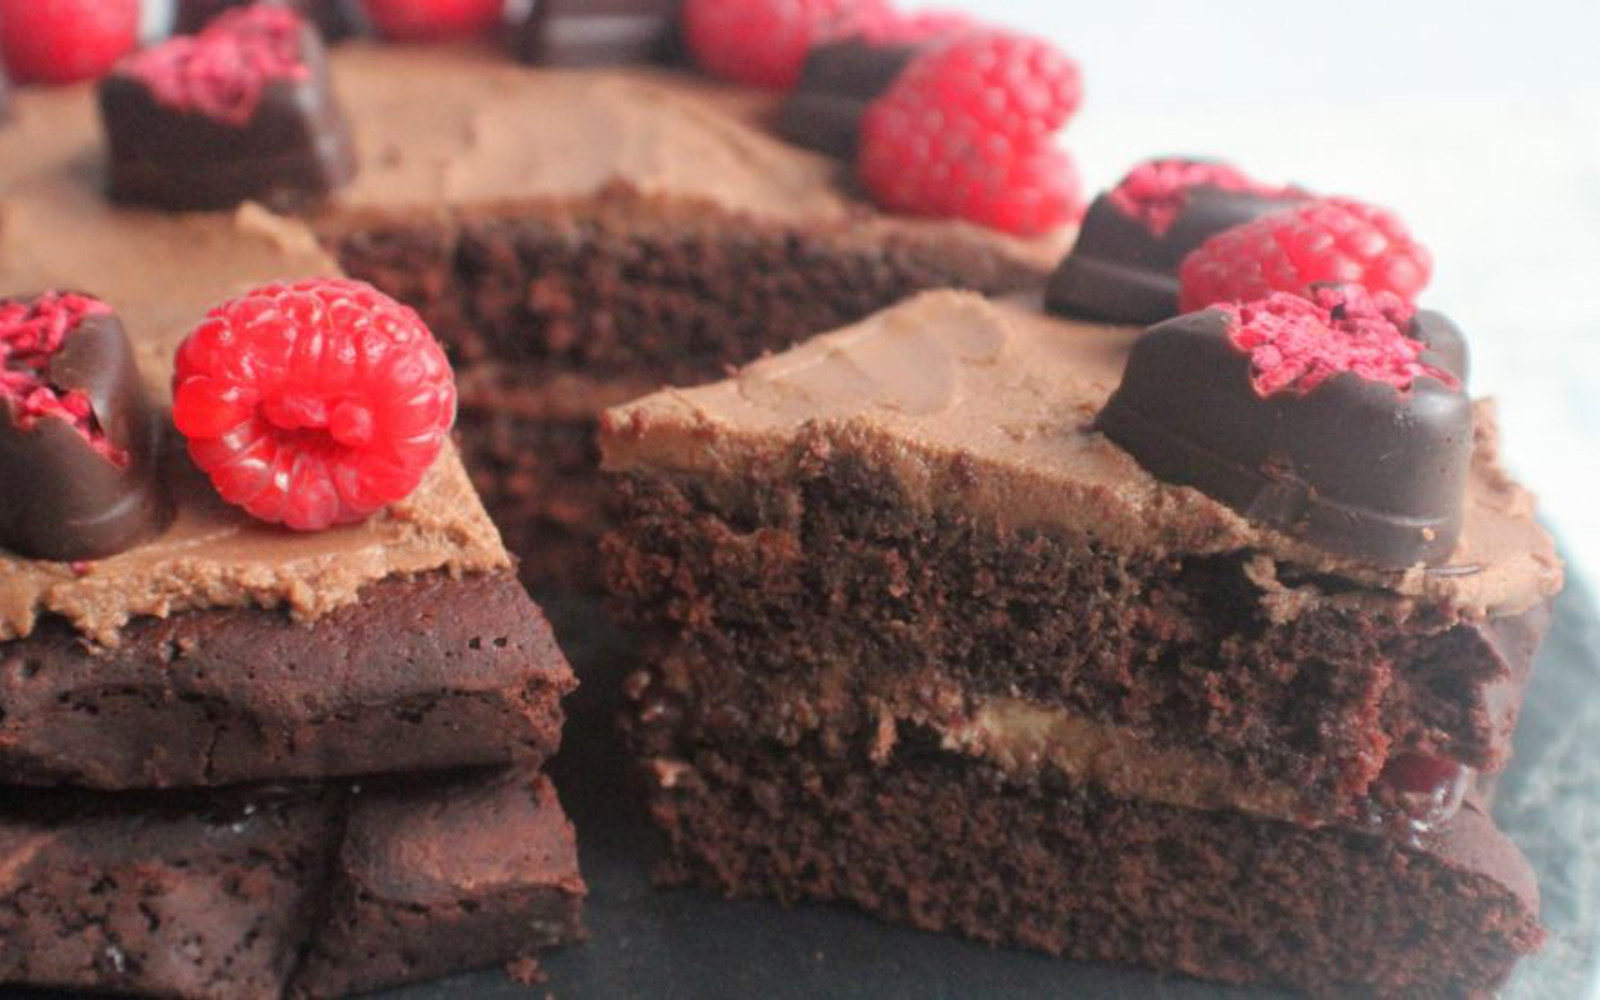 Chocolate Raspberry Beet Cake